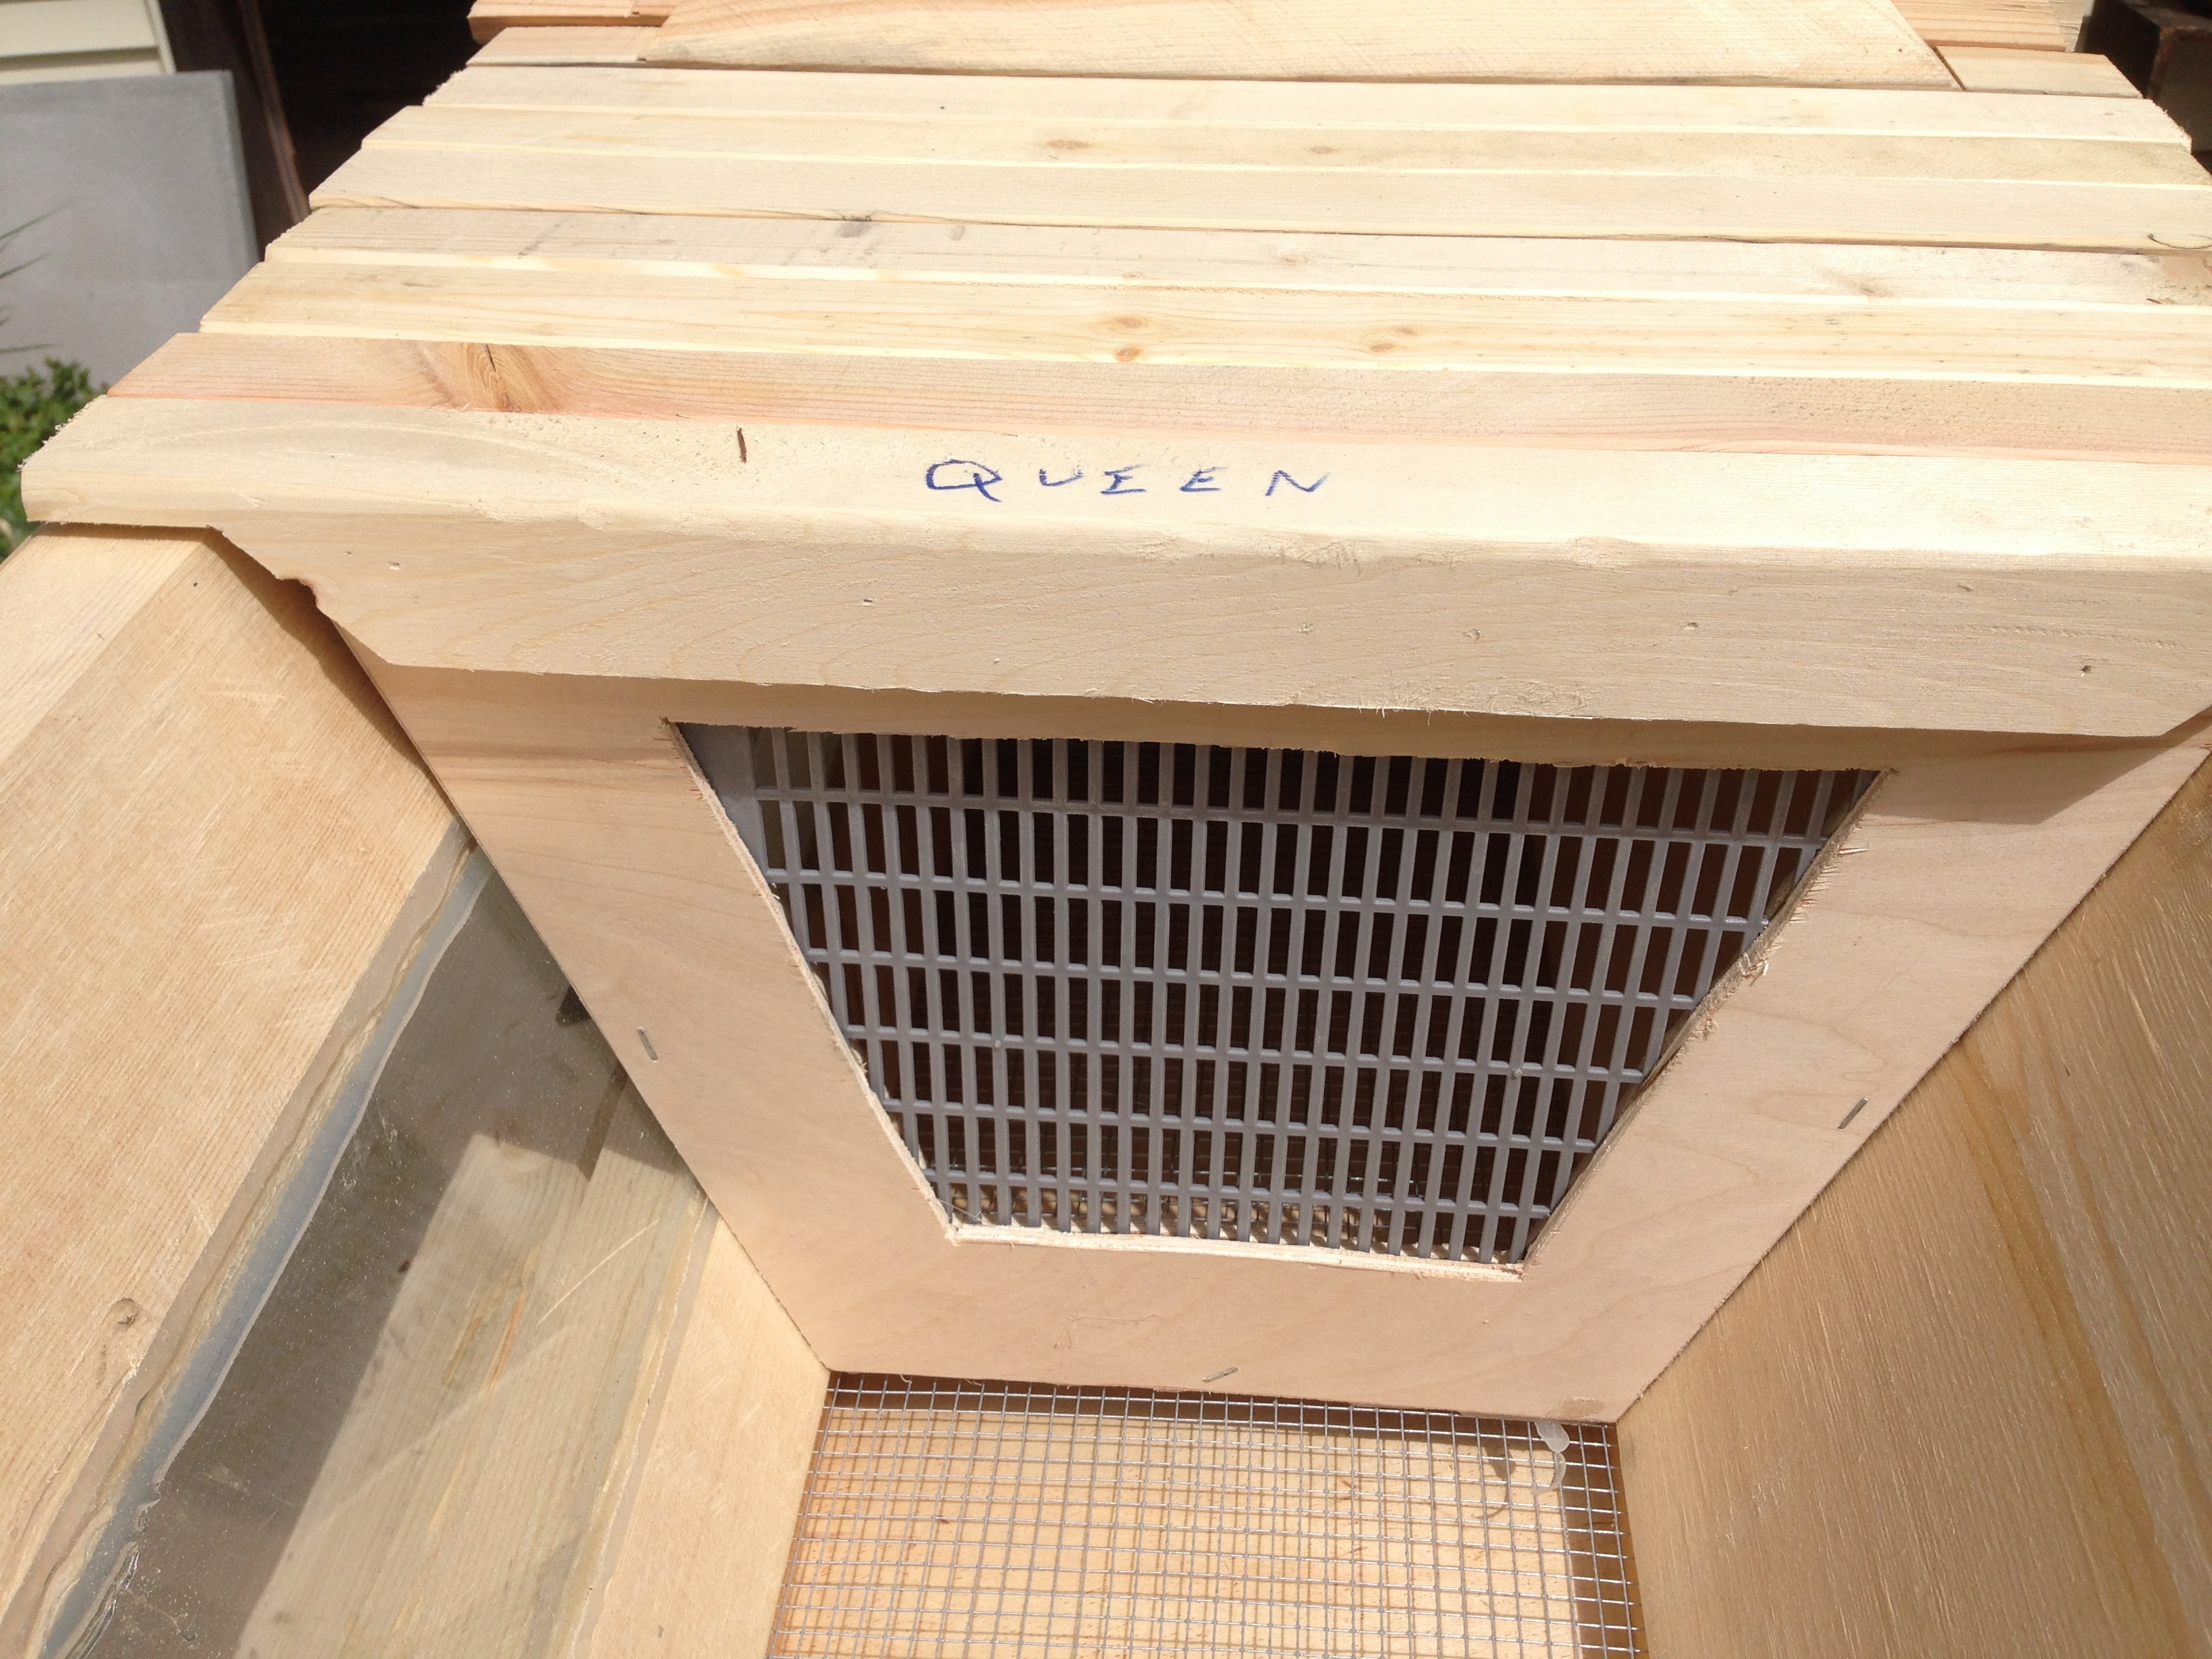 Top Bar Hives made to order - West Kootenay Beekeepers